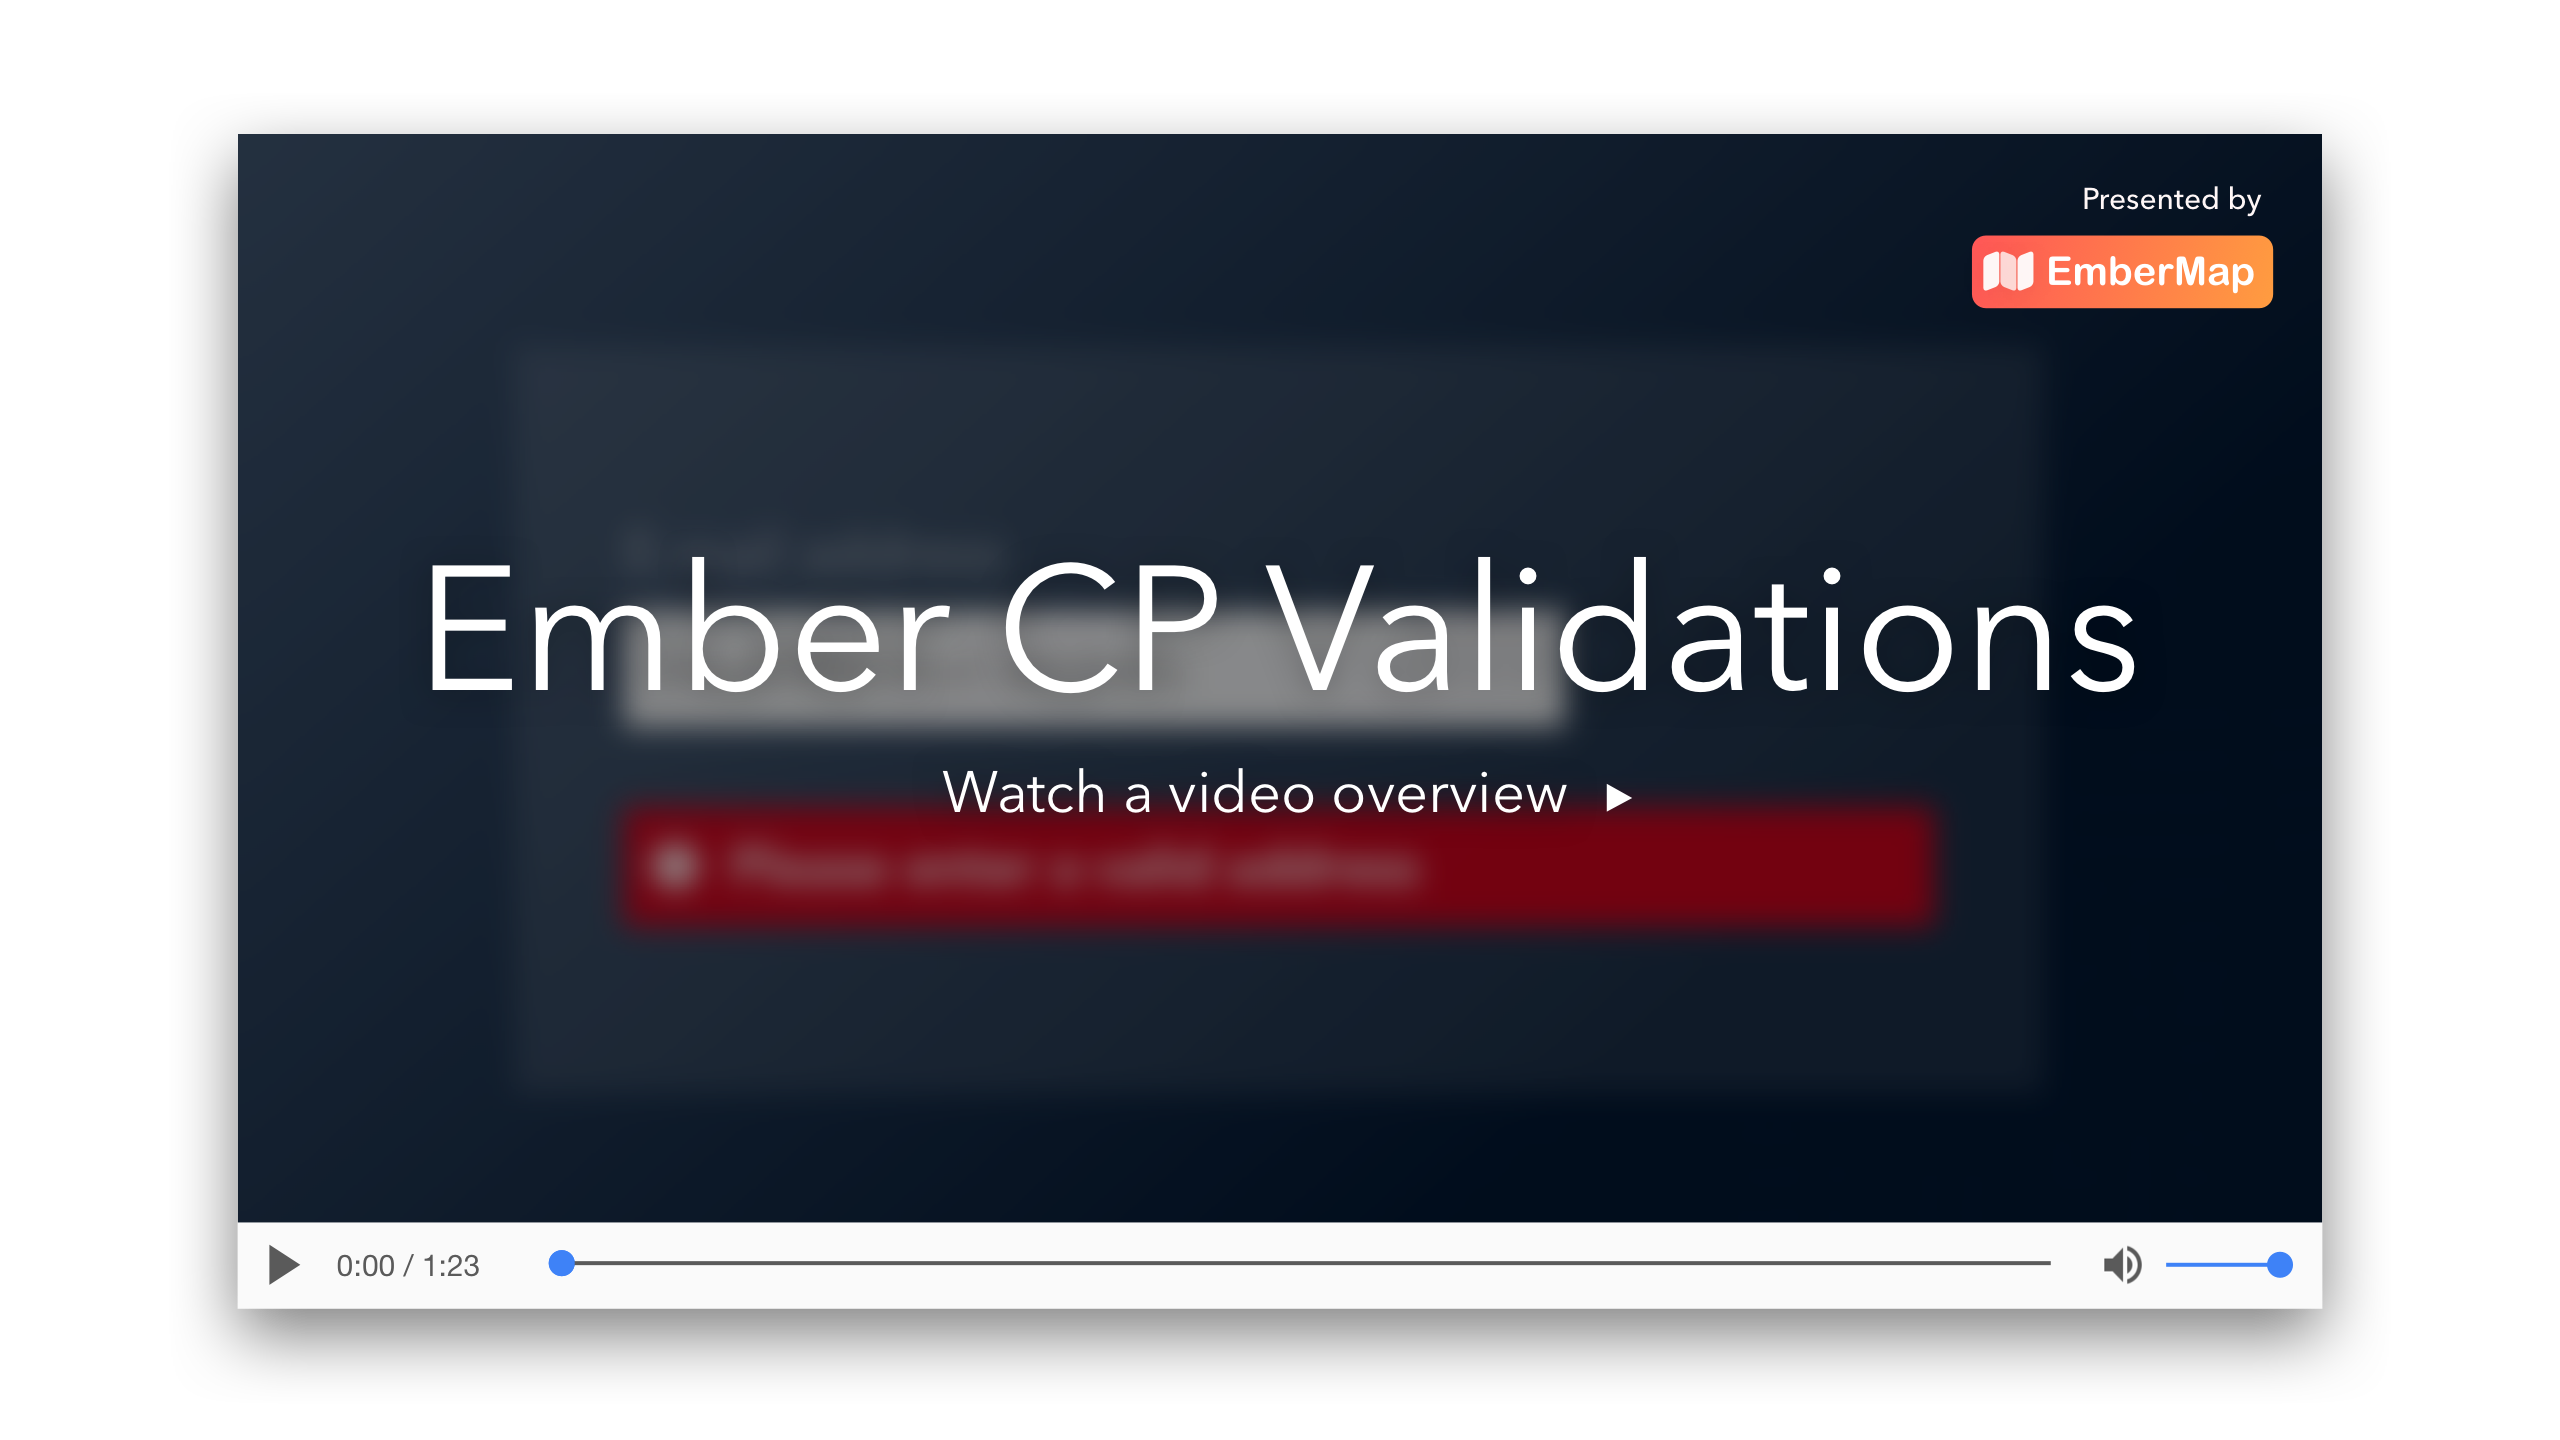 Introduction to Ember CP Validations